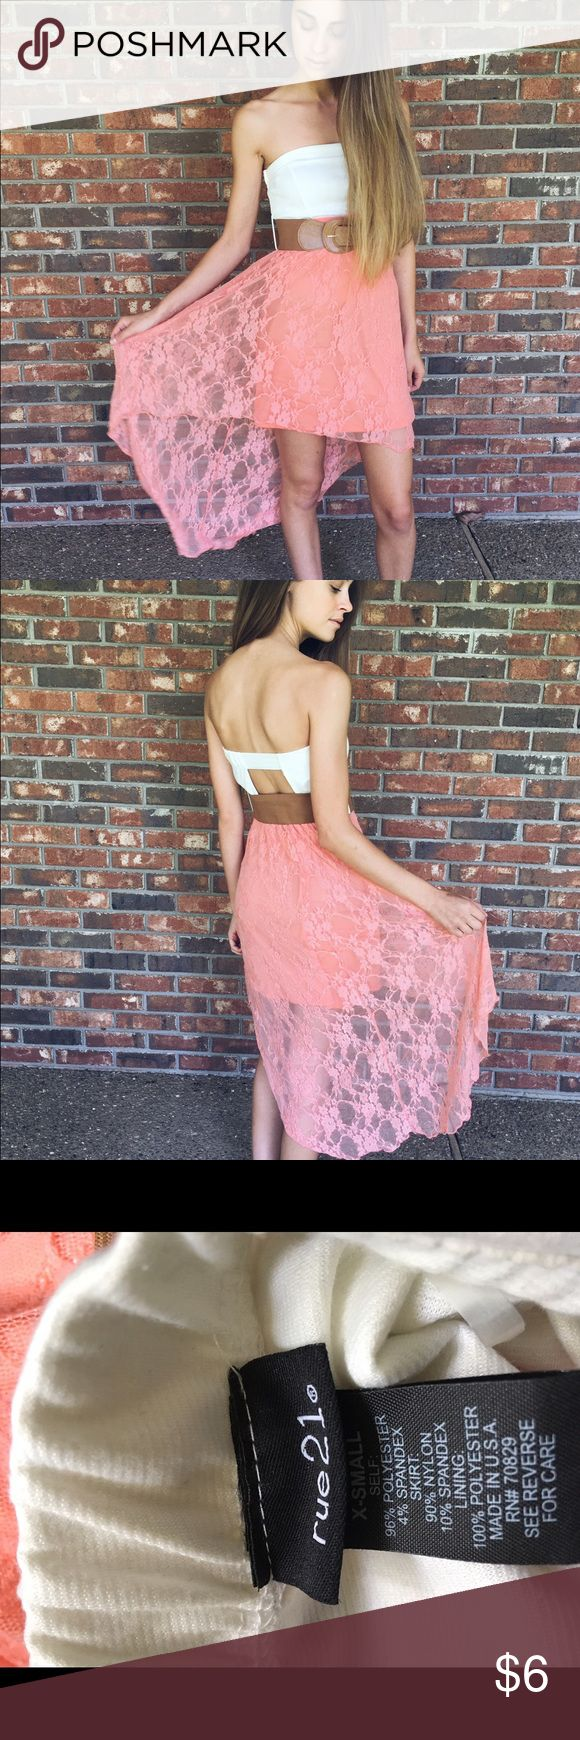 Rue21 Strapless Sundress Like-new strapless sundress with a high-low hem and open back from Rue21. Belt included. Rue 21 Dresses Strapless